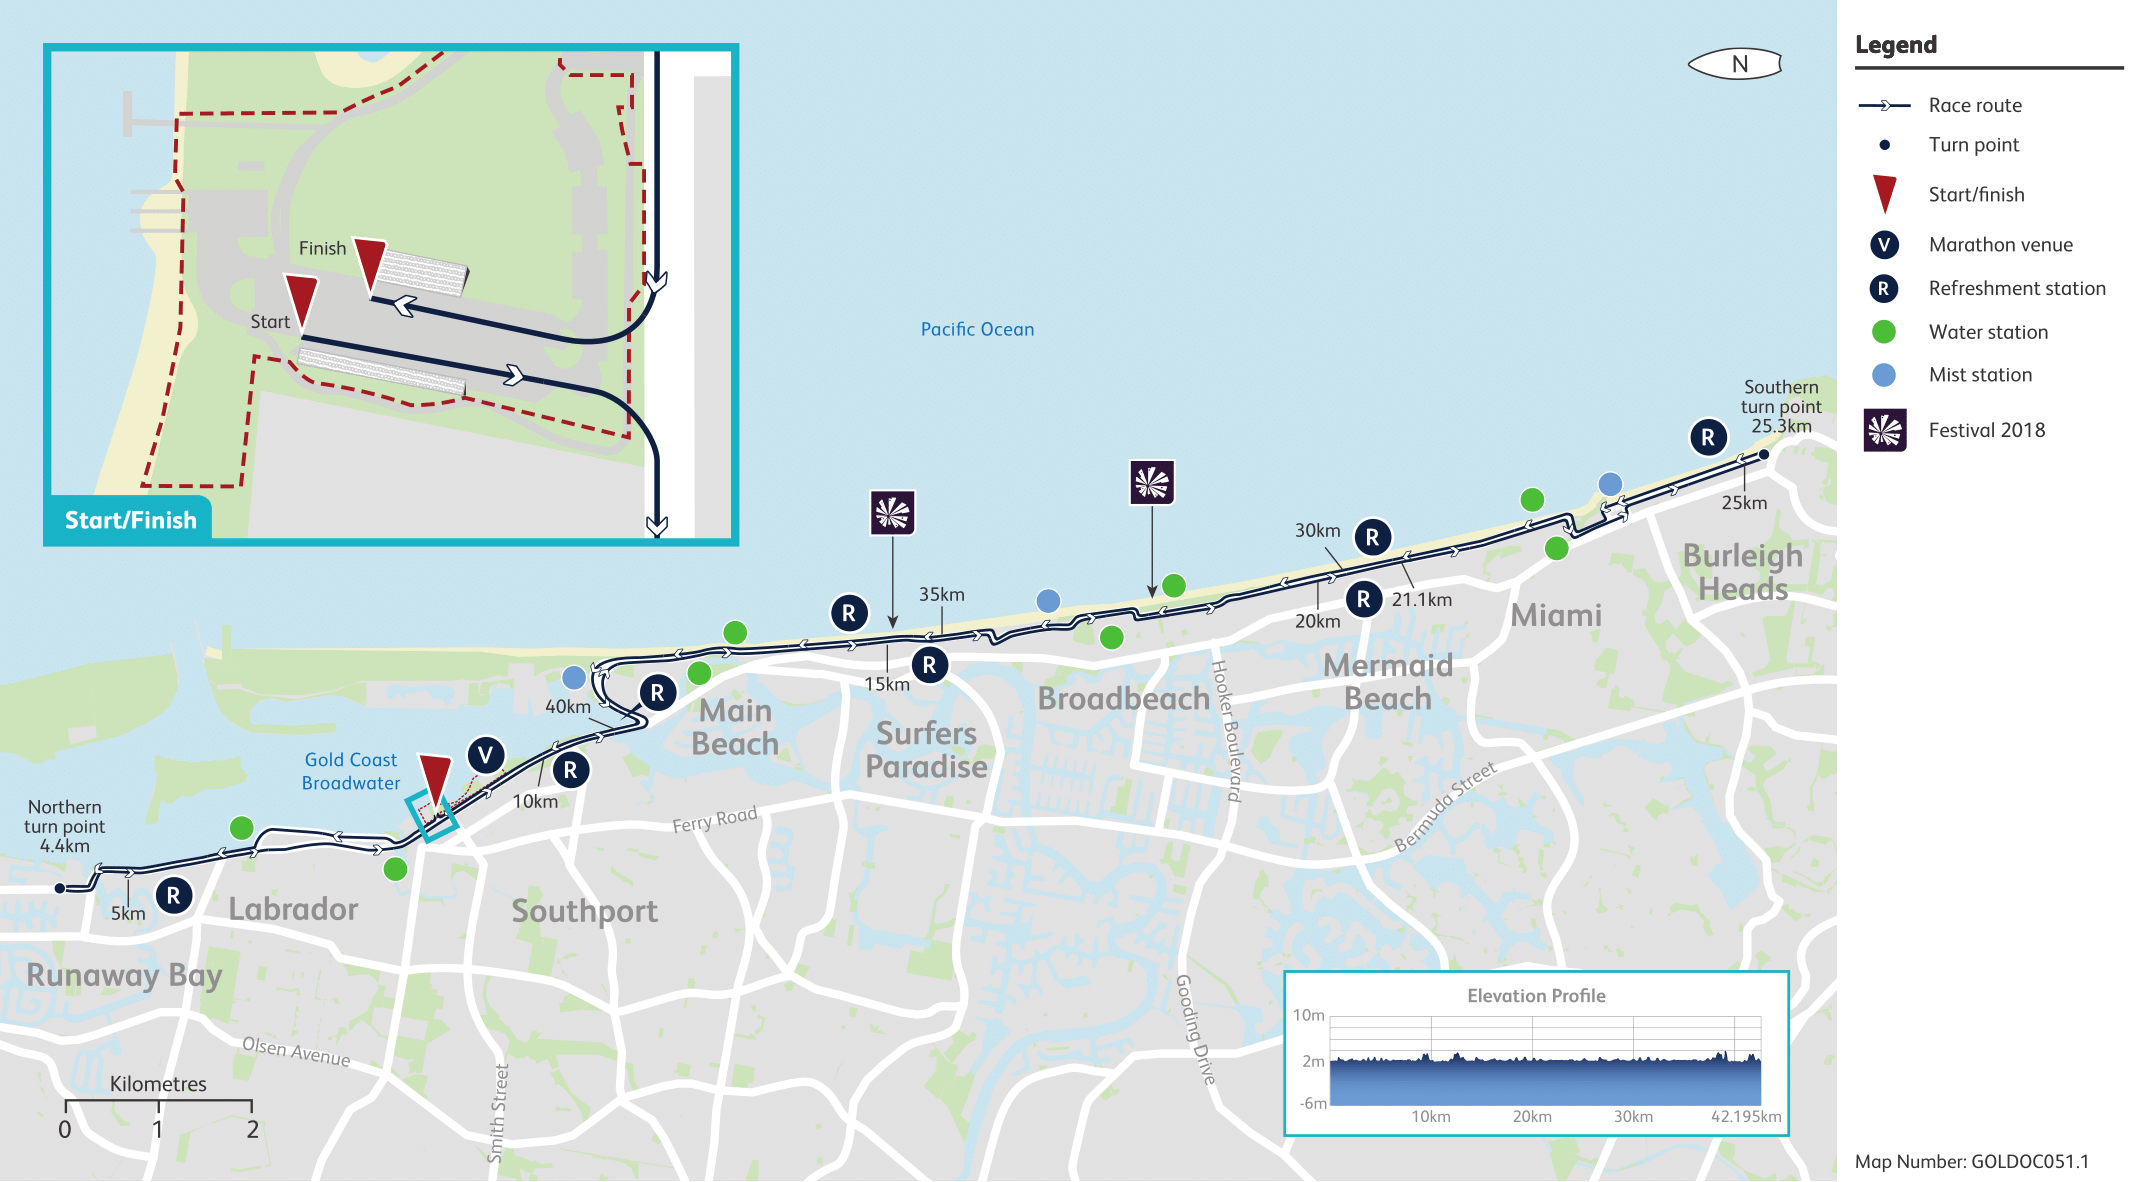 Map of GC2018 42.195km marathon course. Start Mitchell Park, head west, Right onto Gold Coast Highway, Right onto Marine Parade, head north, Right onto Gold Coast Highway, Right onto Marine Parade, head north, Right onto Bayview Street, Left U-Turn at Broadwater Street (4.4km), the northern turn point, head south on Bayview St, Left onto Marine Parade, head south. Left onto Gold Coast Highway, continue south past the Southport Broadwater Parklands and over the Southport Bridge, Left onto Waterways Drive, Right onto Main Beach Parade, continue south along Main Beach Parade, Left onto Higman Street, Right onto Esplanade, head south, continue south onto Northcliffe Terrace and Garfield Terrace, Right onto Fern Street, Left onto Old Burleigh Road. Left onto Armrick Avenue, Right onto Broadbeach Boulevard, Right onto Queensland Avenue, Left onto Old Burleigh Road, head south, continue south onto Hedges Avenue, continue south onto Albatross Avenue, continue south onto Marine Parade, Right onto Hythe Street, Left onto Gold Coast Highway, Left onto Kratzmann Avenue, Right onto The Esplanade, head south. Left into Justins Park car park, the southern turn point (25.3km), Right onto The Esplanade, head north, Left onto Kelly Avenue, Right onto Gold Coast Highway, Right on Hythe Street, Left onto Marine Parade, continue north onto Albatross Avenue, continue north onto Hedges Avenue, continue north onto Old Burleigh Road, Right onto Queensland Avenue, Left onto Broadbeach Boulevard, Left onto First Avenue, Right onto Old Burleigh Road, head north. Right onto Fern Street, Left onto Garfield Terrace, continue north onto Northcliffe Terrace and Esplanade, continue north onto Main Beach Parade, head north, continue north onto Macarthur Parade, Left onto Waterways Drive, Right onto Gold Coast Highway and over the Southport Bridge, continue north past the Southport Broadwater Parklands, Right into Mitchell Park to the Finish